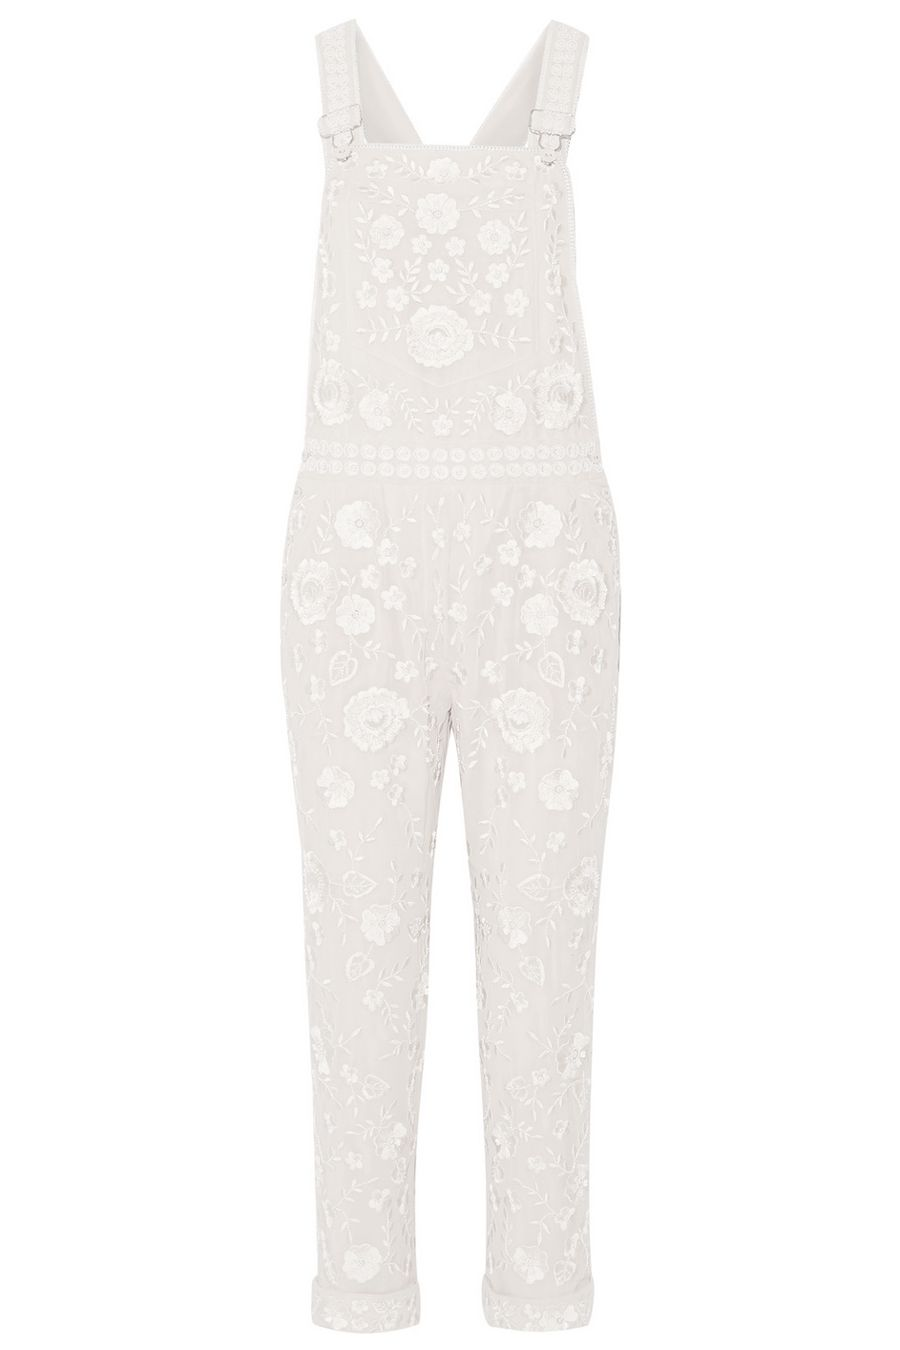 "<p><strong>Needle & Thread</strong> overalls, $650, <a href=""https://www.net-a-porter.com/us/en/product/706052/needle_and_thread/embellished-georgette-overalls"" target=""_blank"">netaporter.com</a>. </p>"